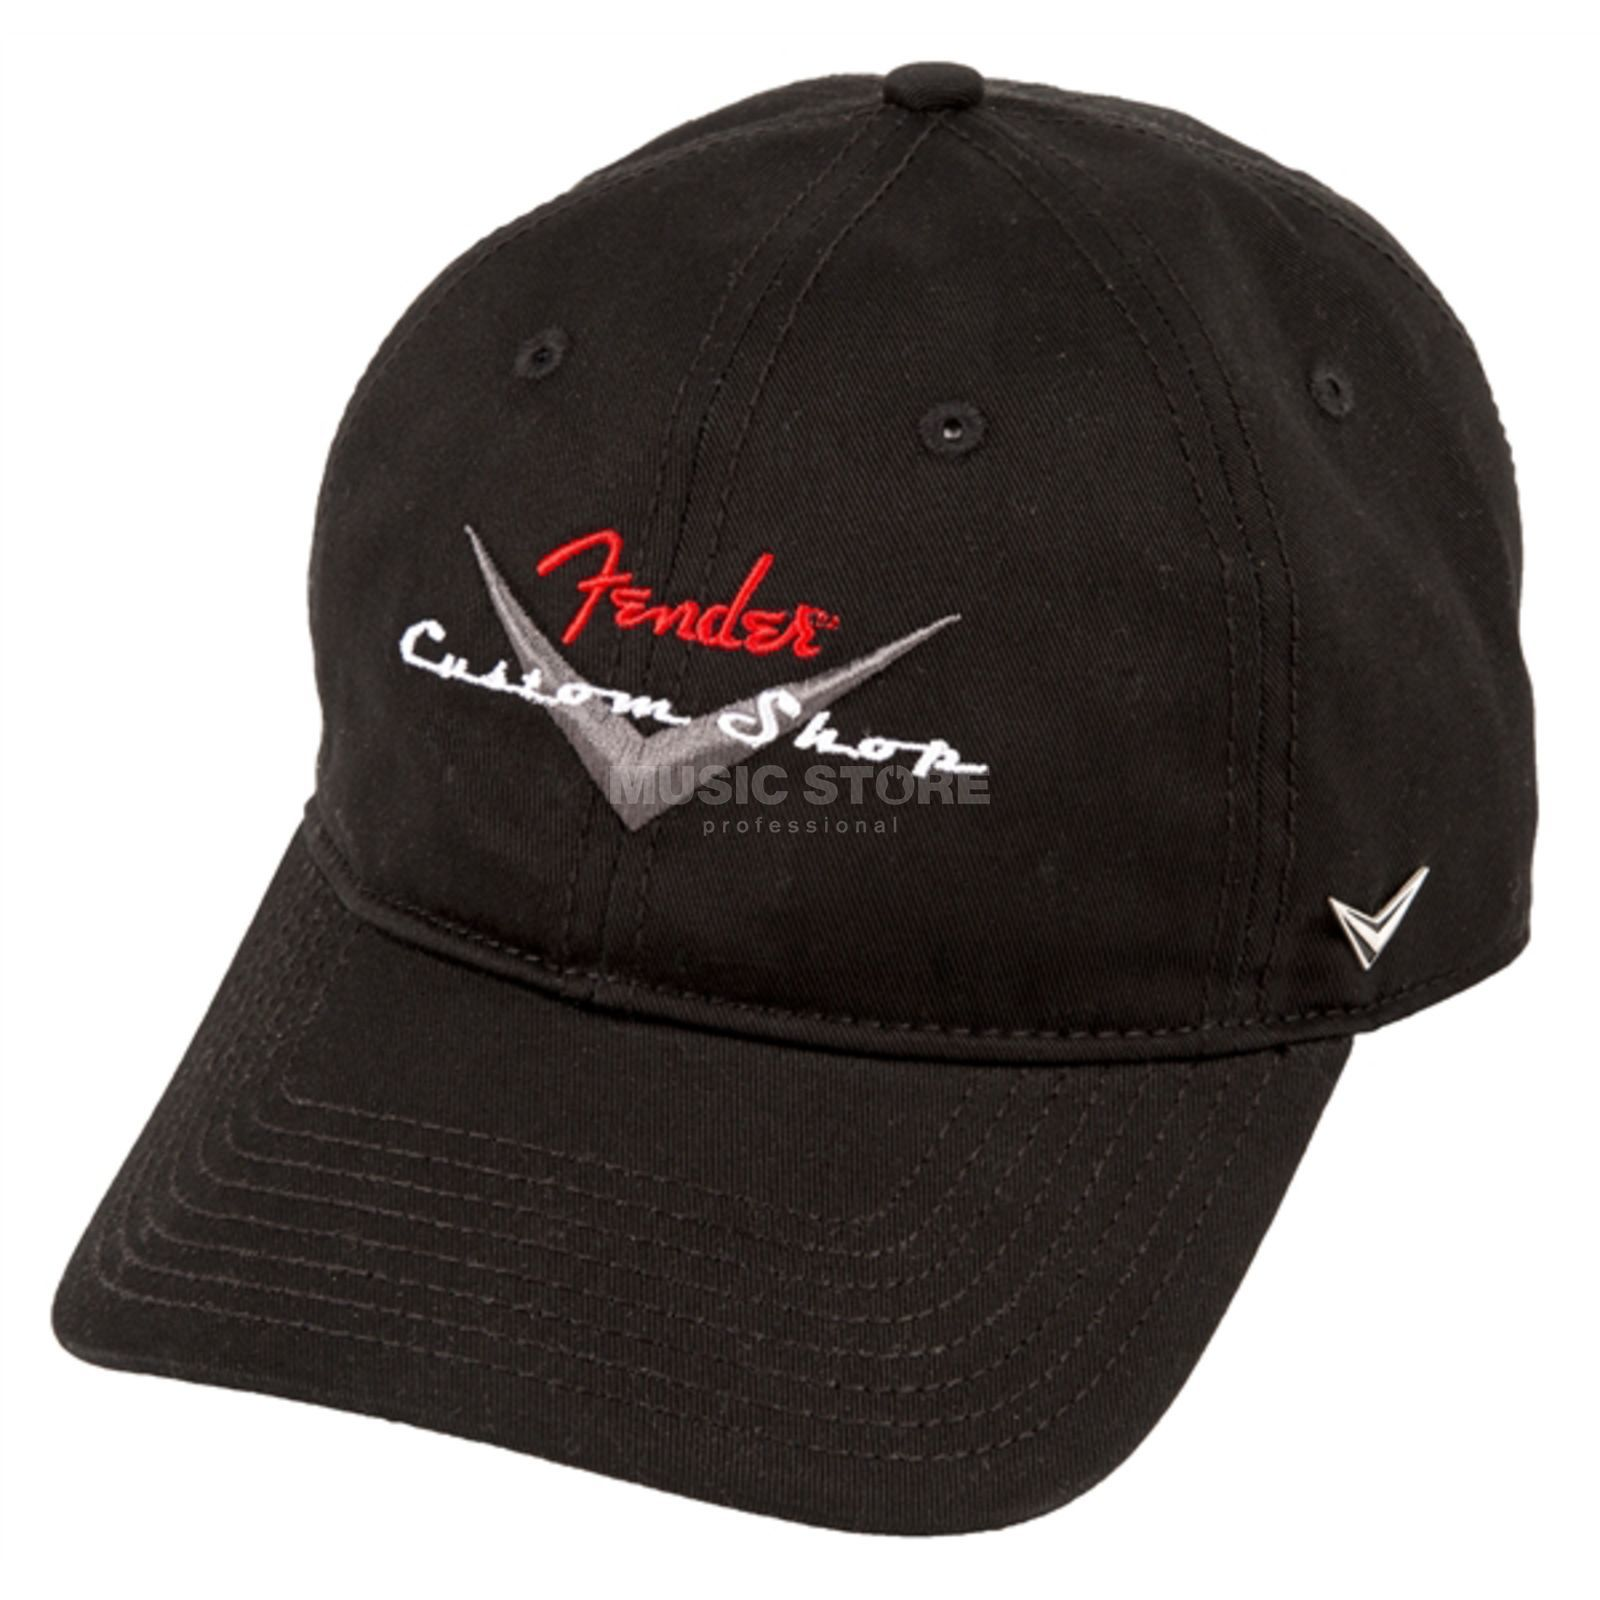 Fender Custom Shop Baseball Hat Black Image du produit